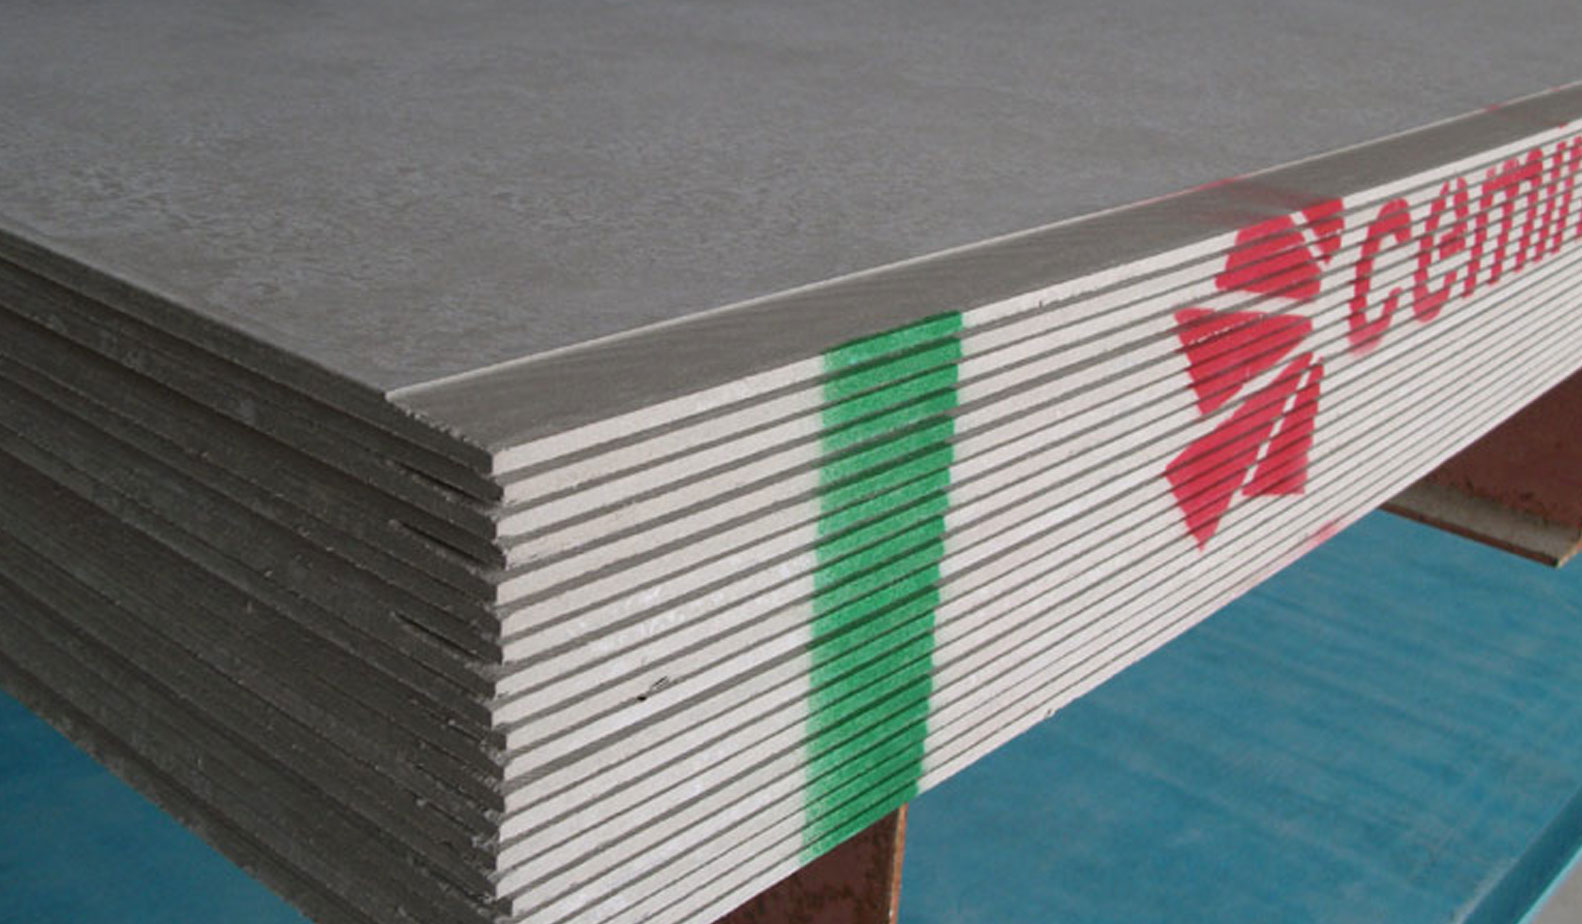 Ceminseal wallboard